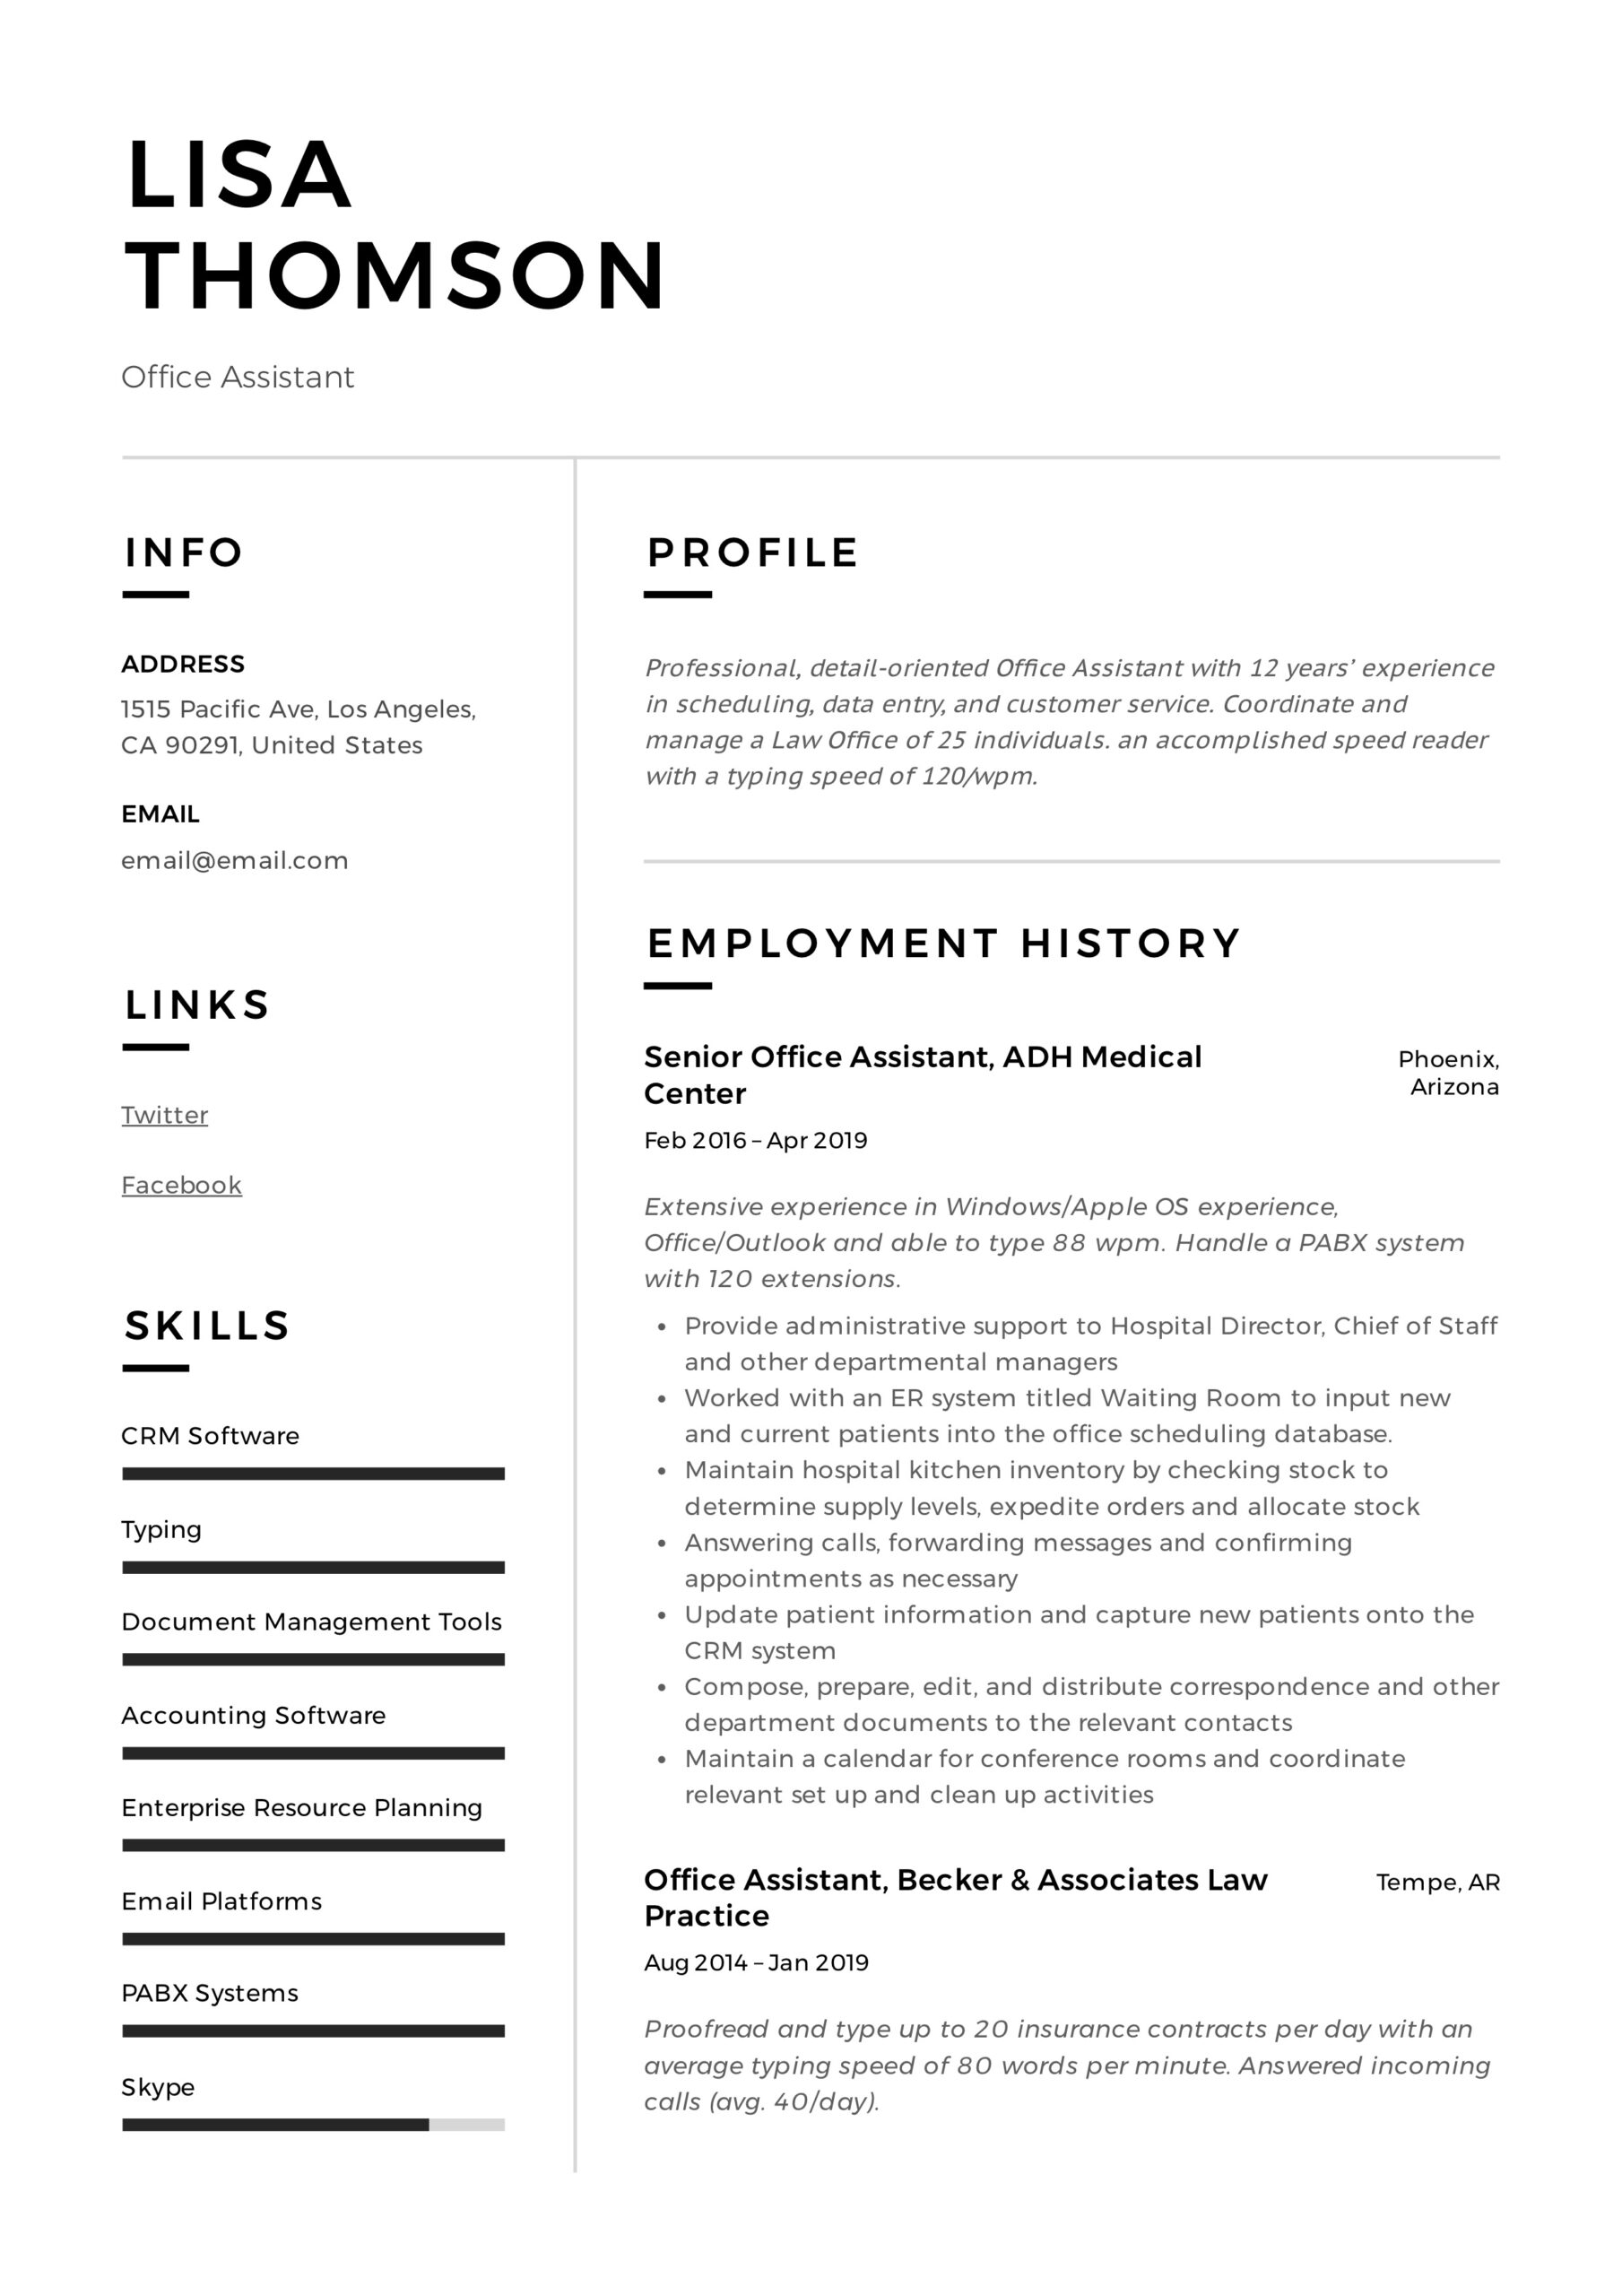 office assistant resume writing guide templates sample for position lisa thomson rules Resume Sample Resume For Office Assistant Position